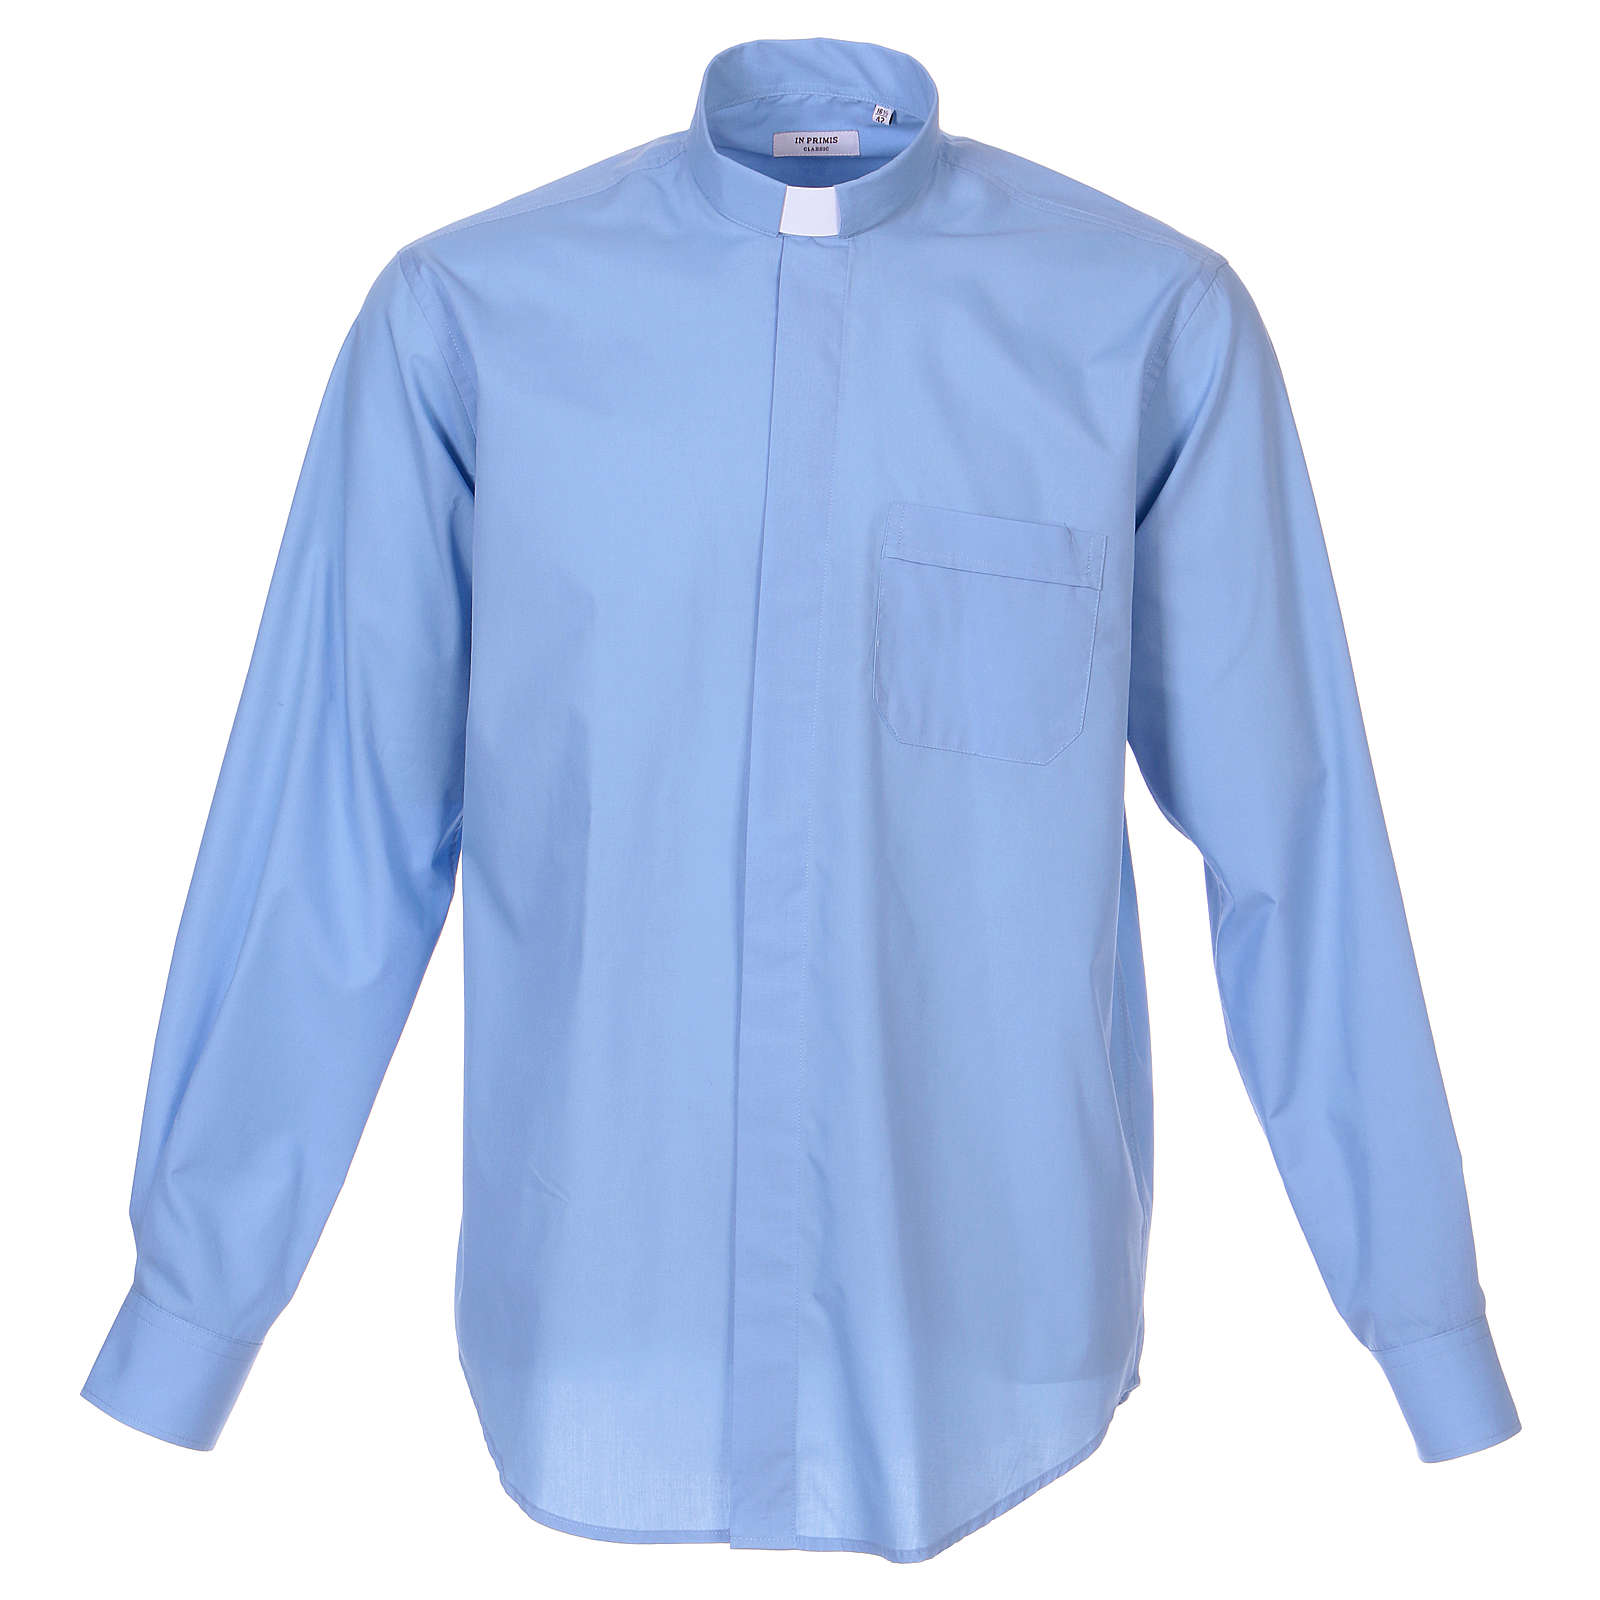 Camisa Clergy manga larga mixto algodón celeste In Primis 4